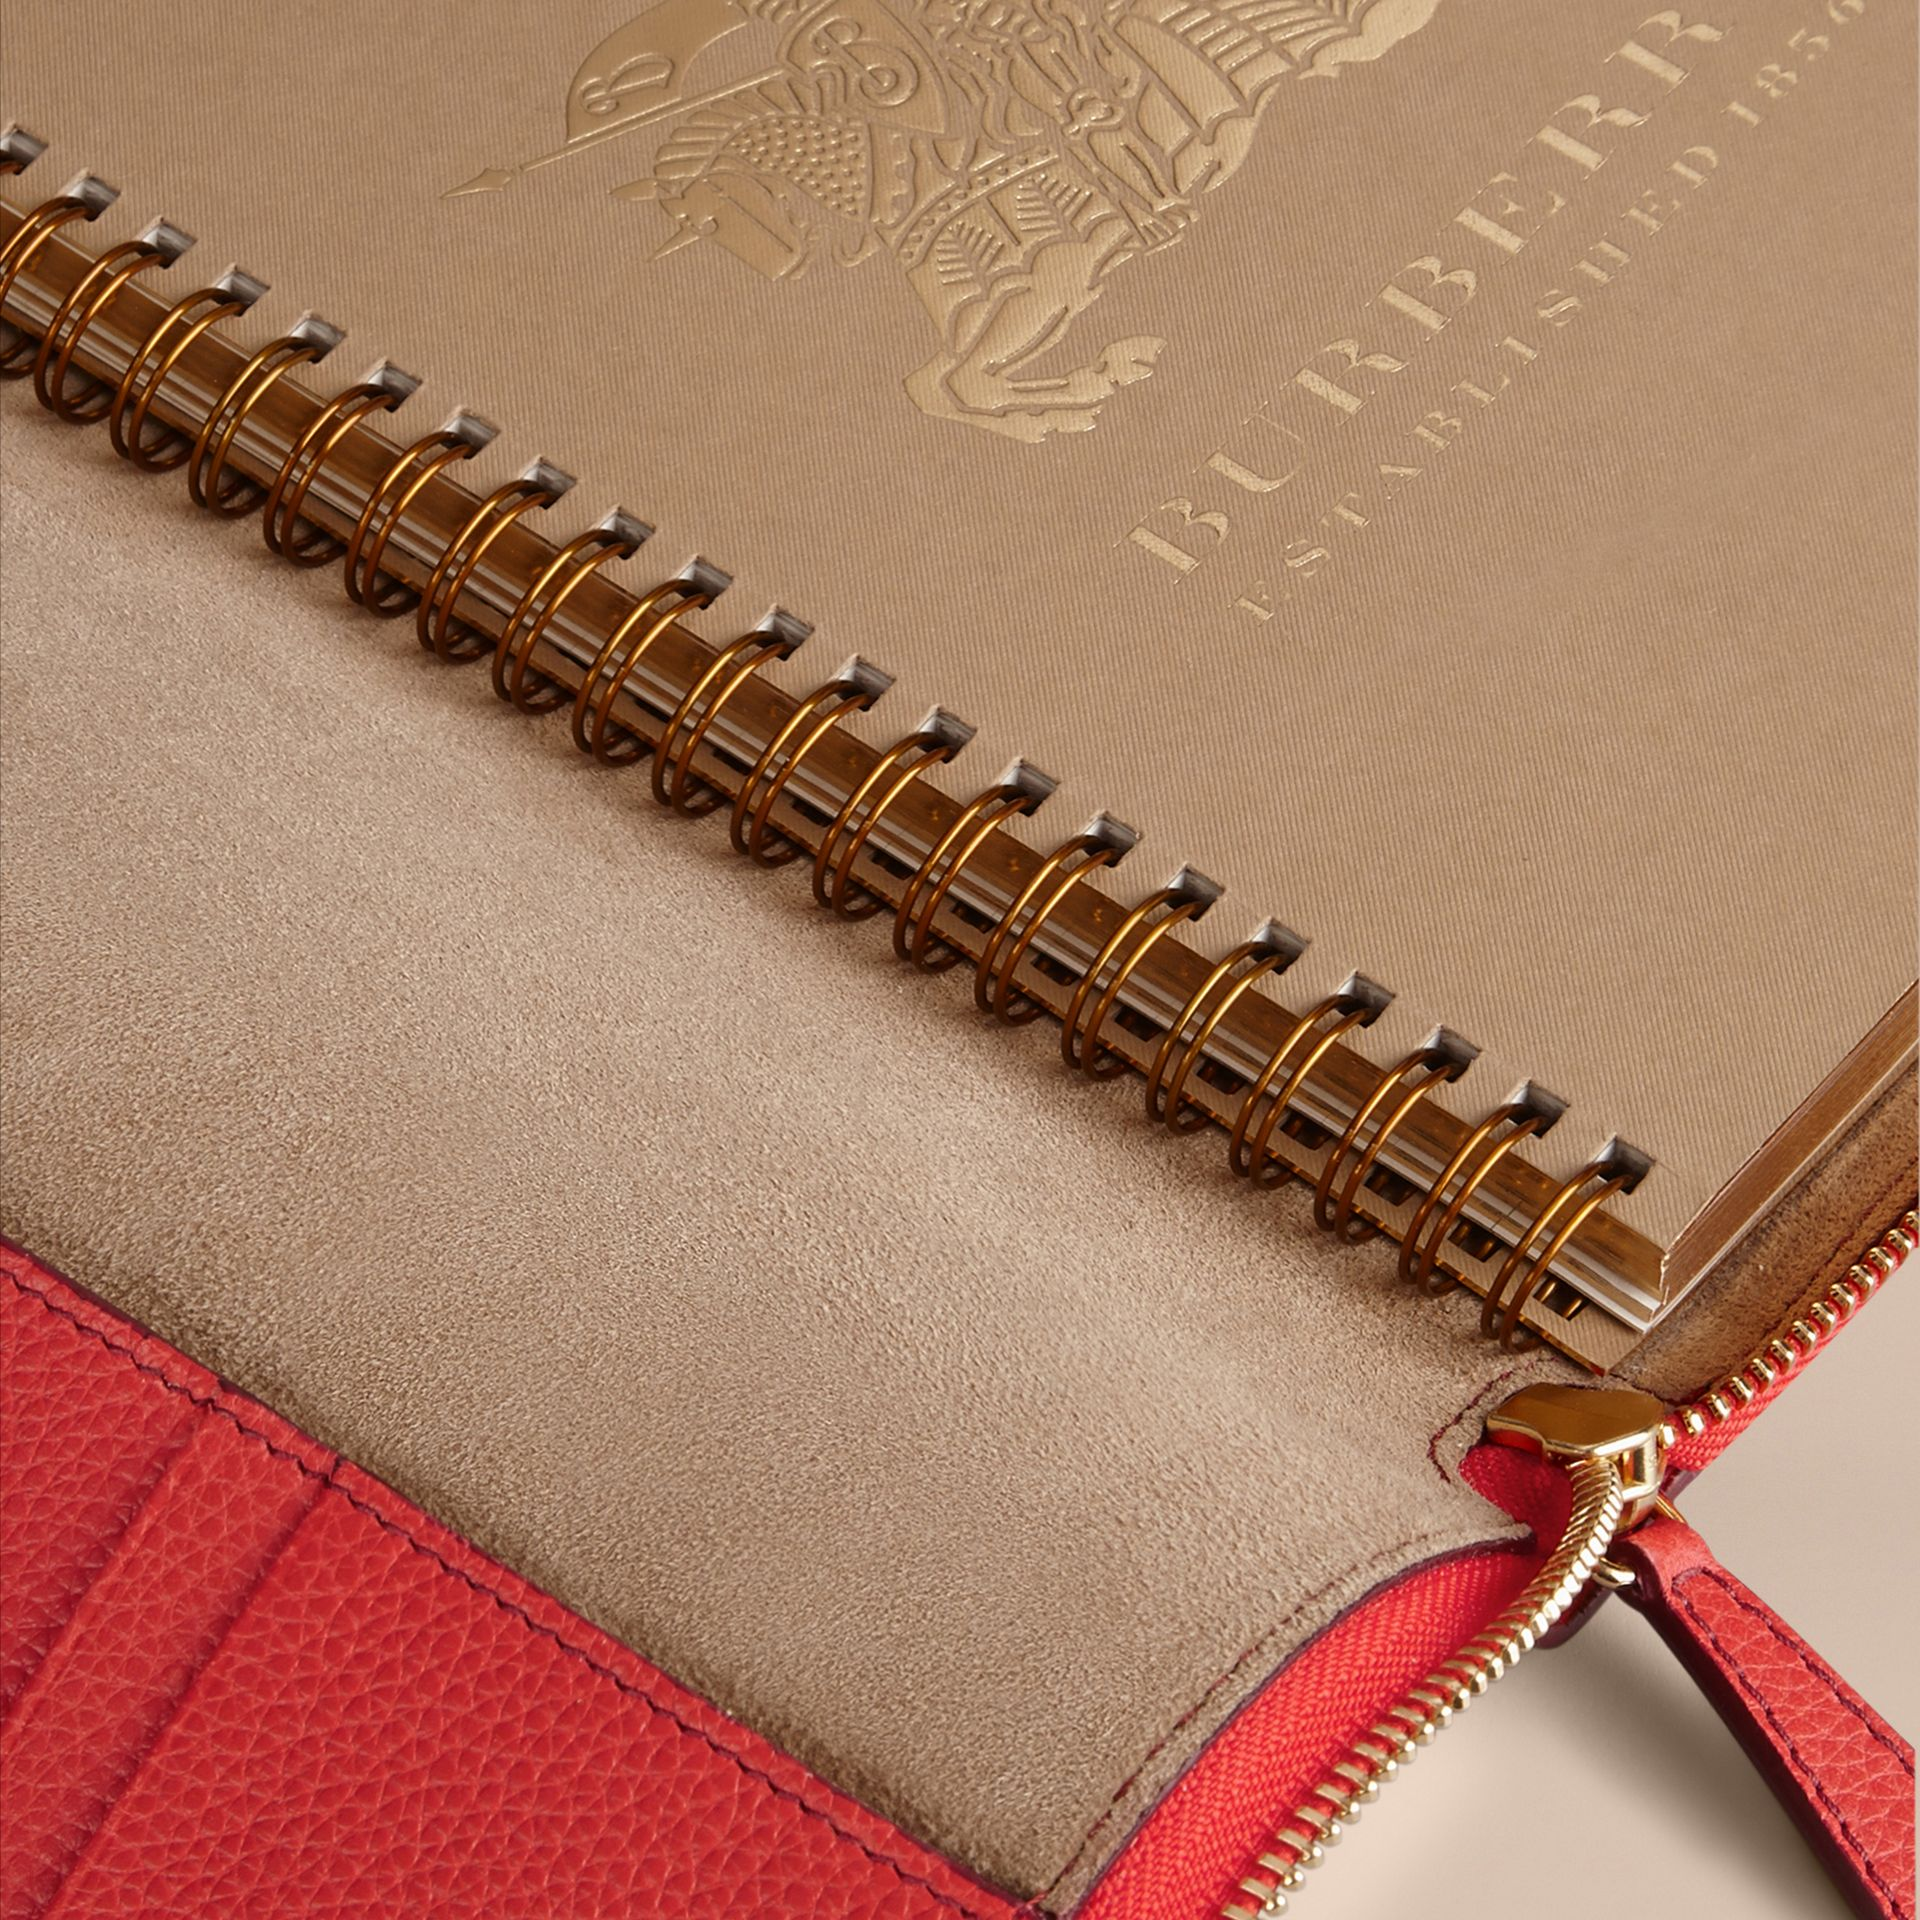 Ziparound Grainy Leather 18 Month 2016/17 A5 Diary in Orange Red | Burberry - gallery image 4